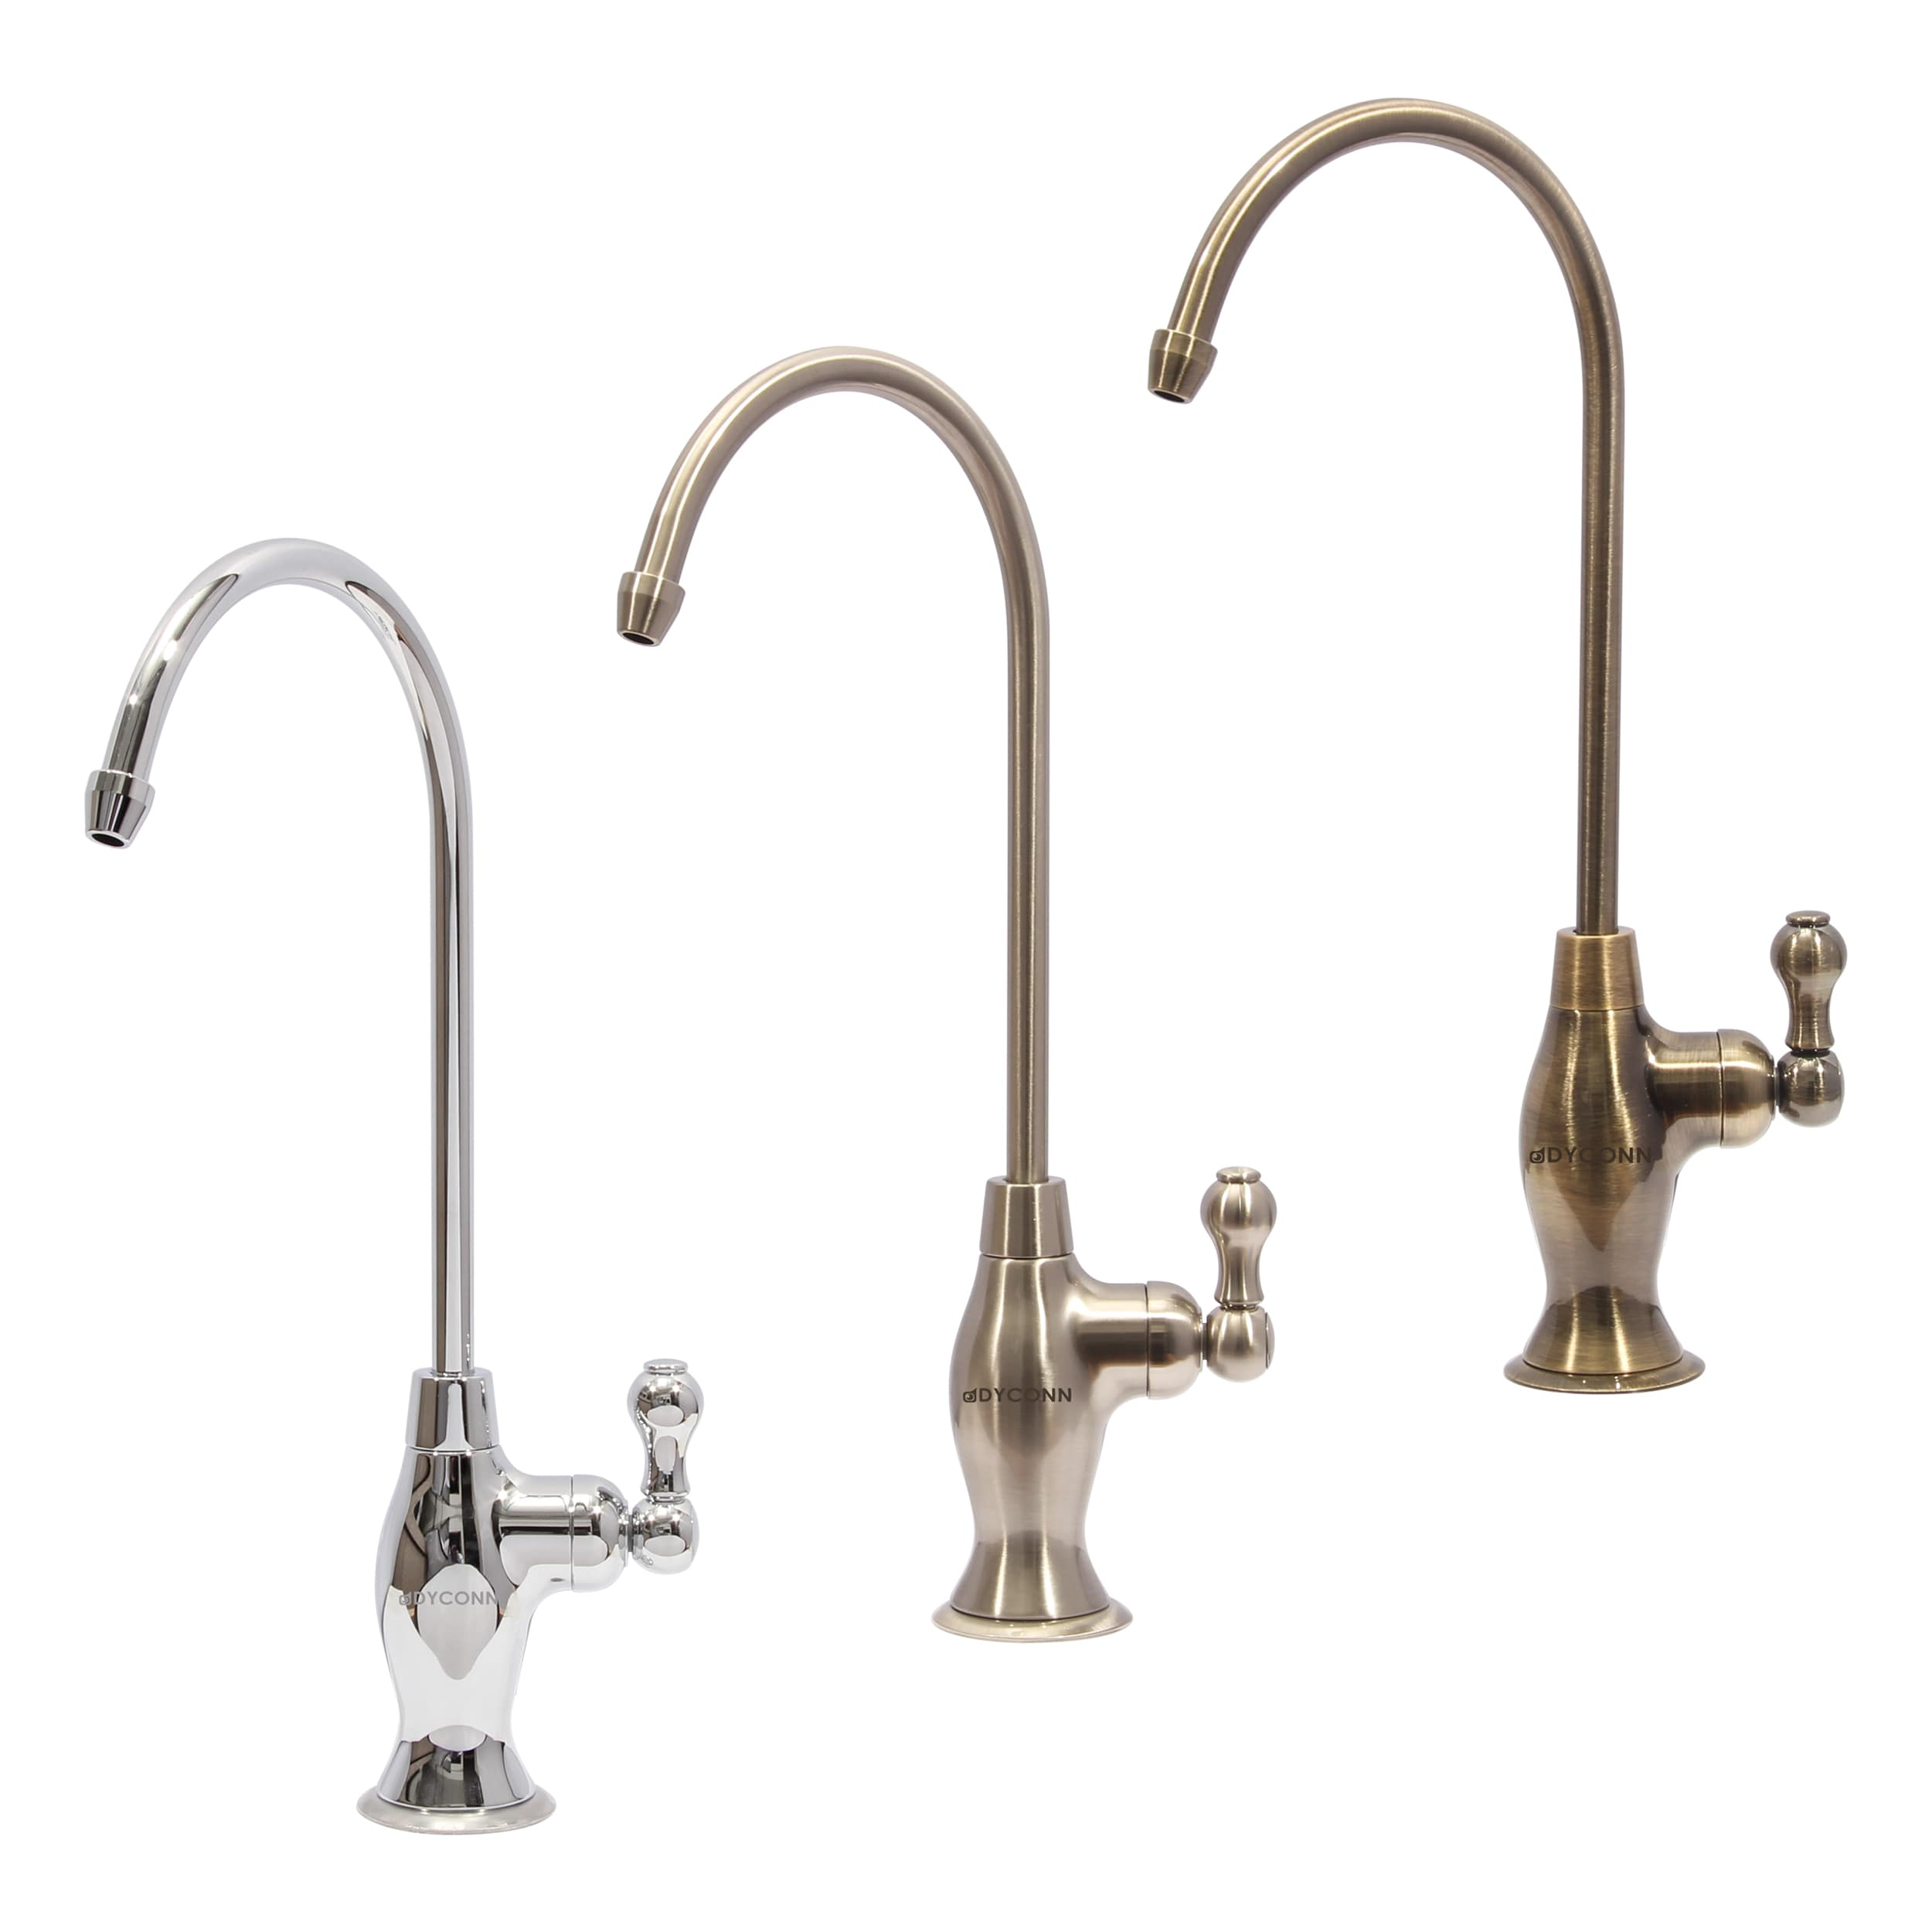 Shop Dyconn DYRO905 Drinking Water Faucet for RO Filtration System ...